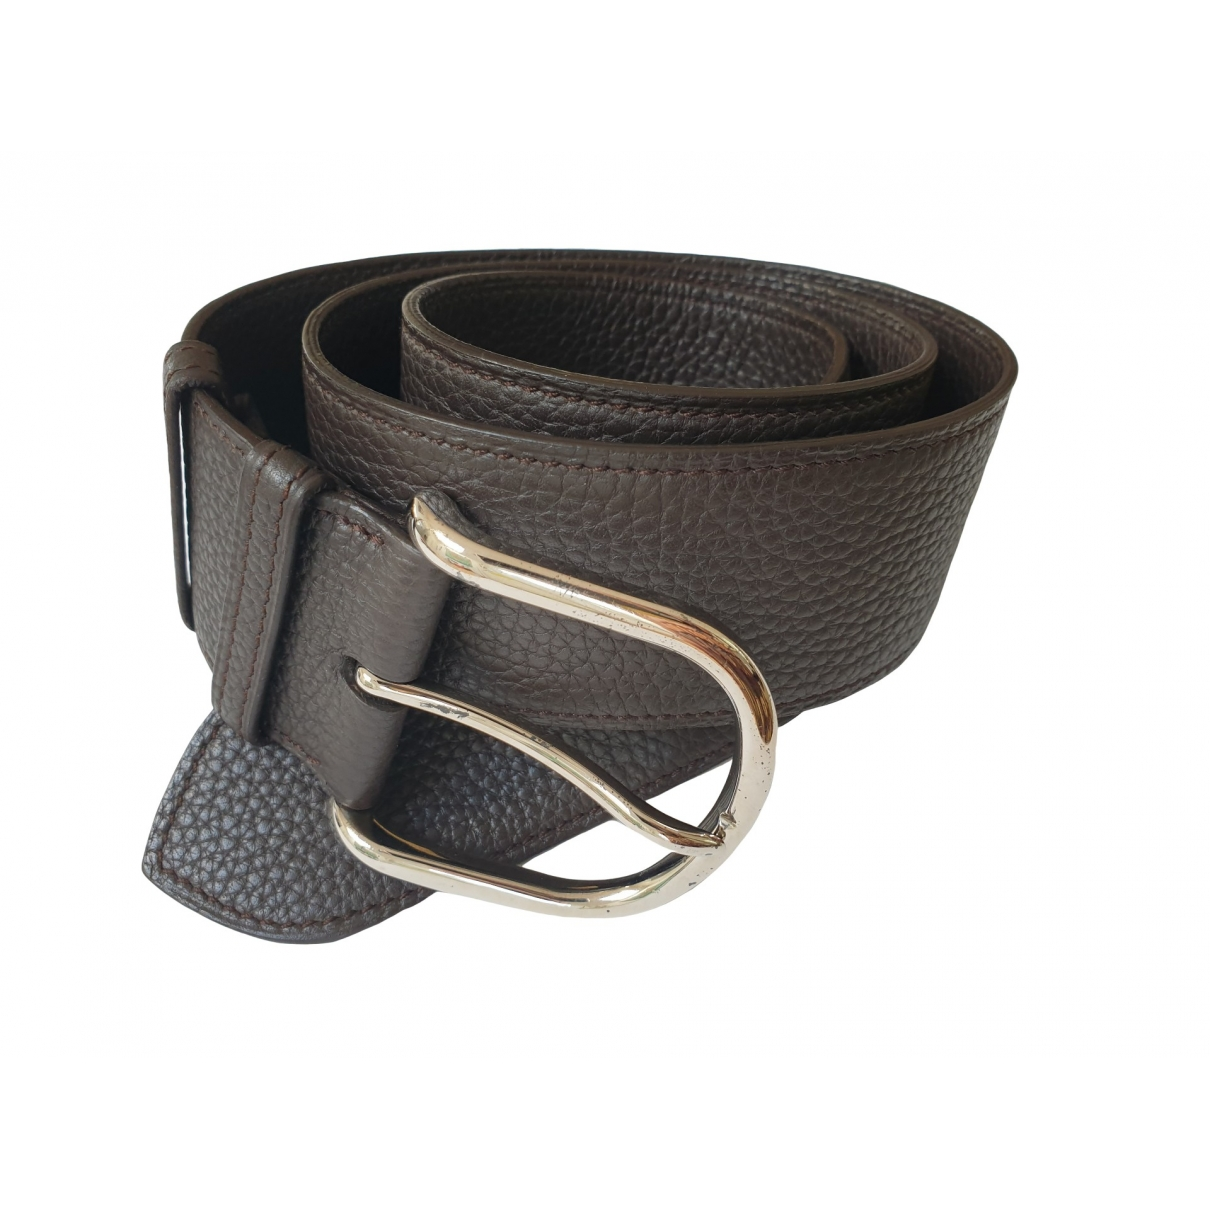 Hermès \N Brown Leather belt for Women 31 Inches